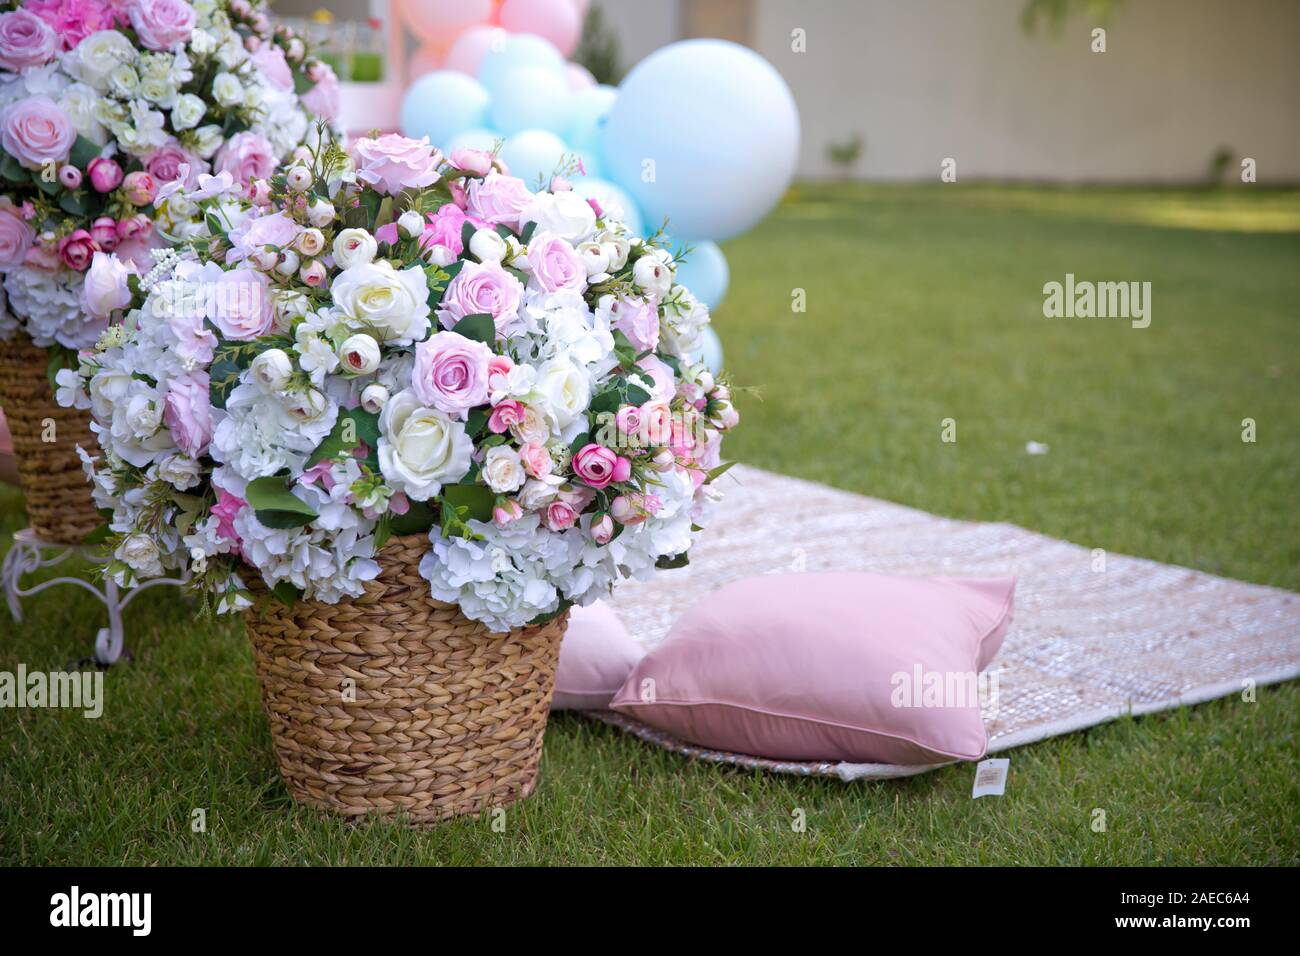 Bouquet Garden Flowers Picnic Basket High Resolution Stock Photography And Images Alamy